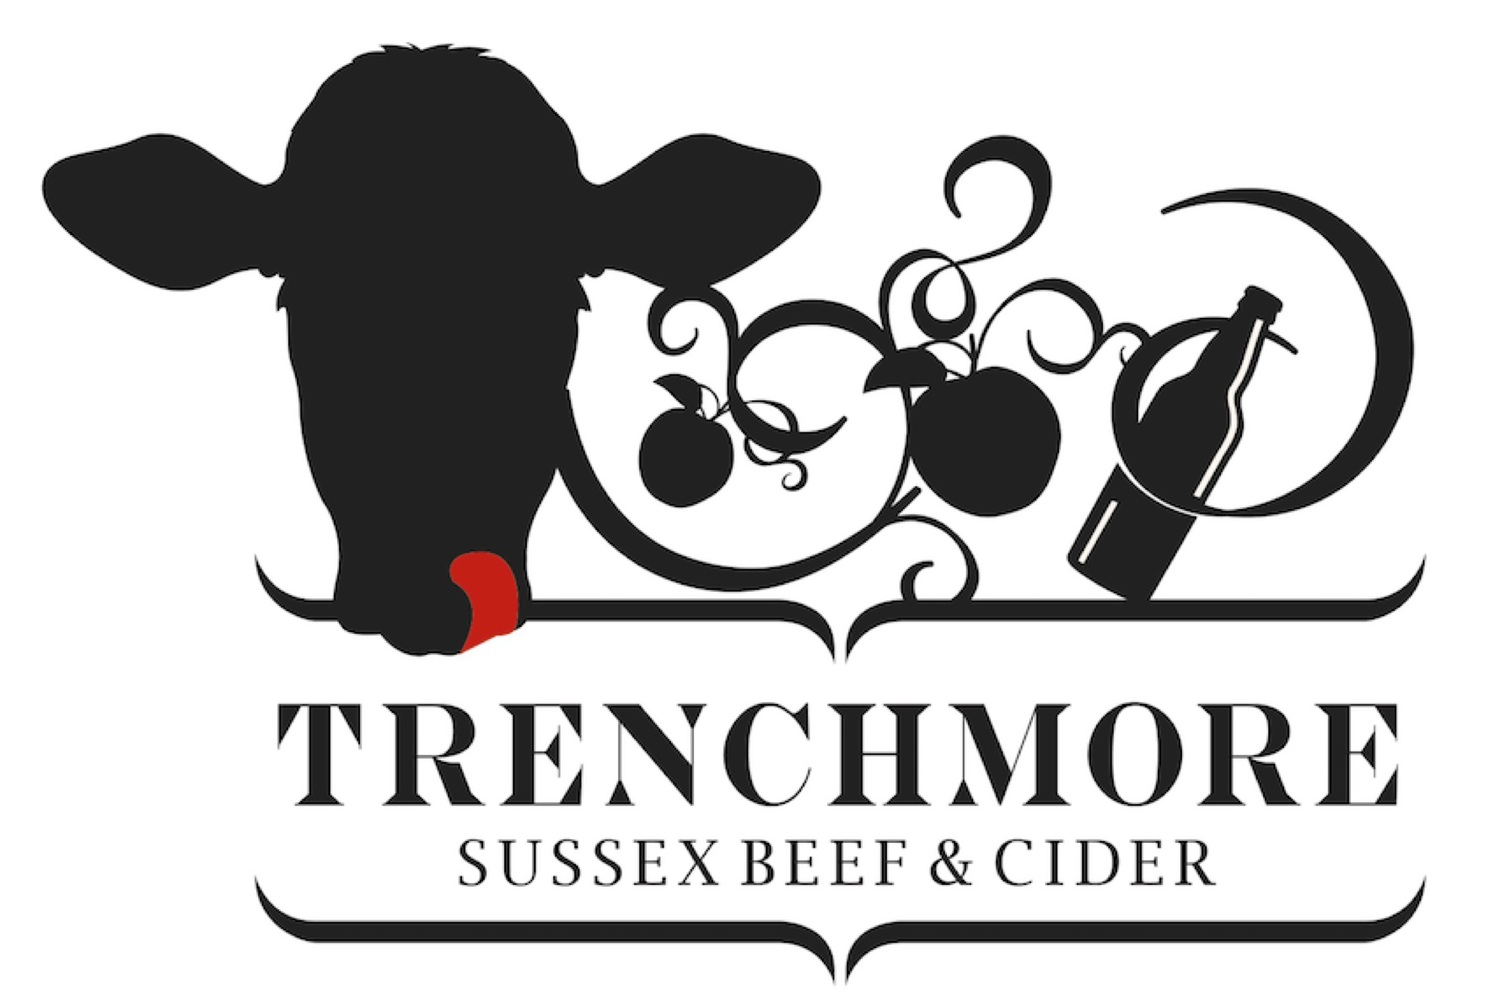 Trenchmore Sussex Beef & Cider